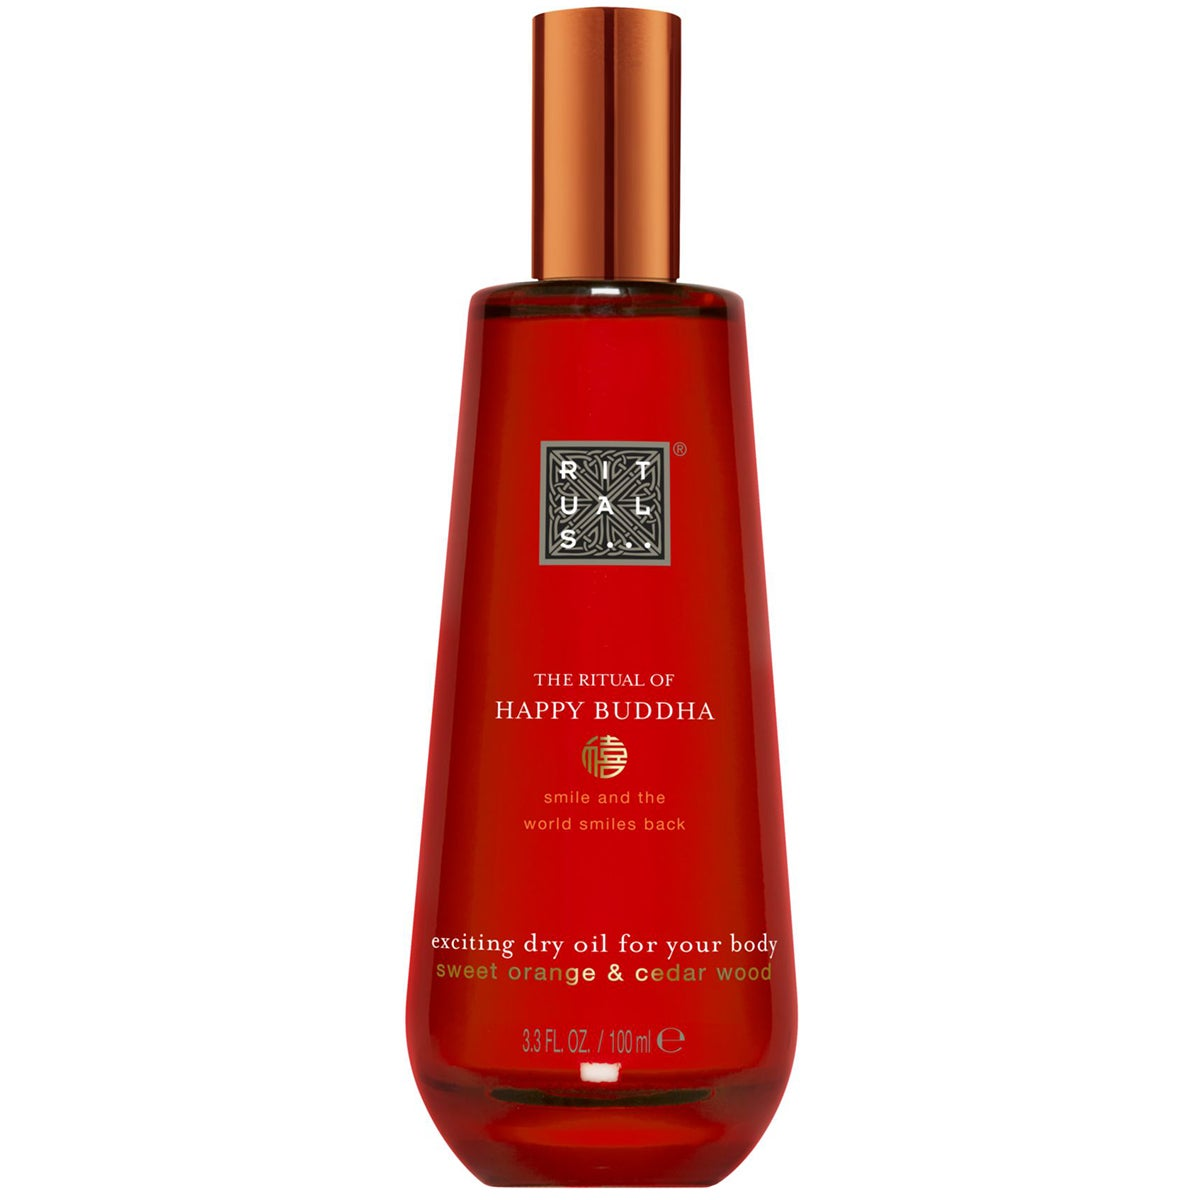 Rituals The Ritual Of Happy Buddha Dry Oil